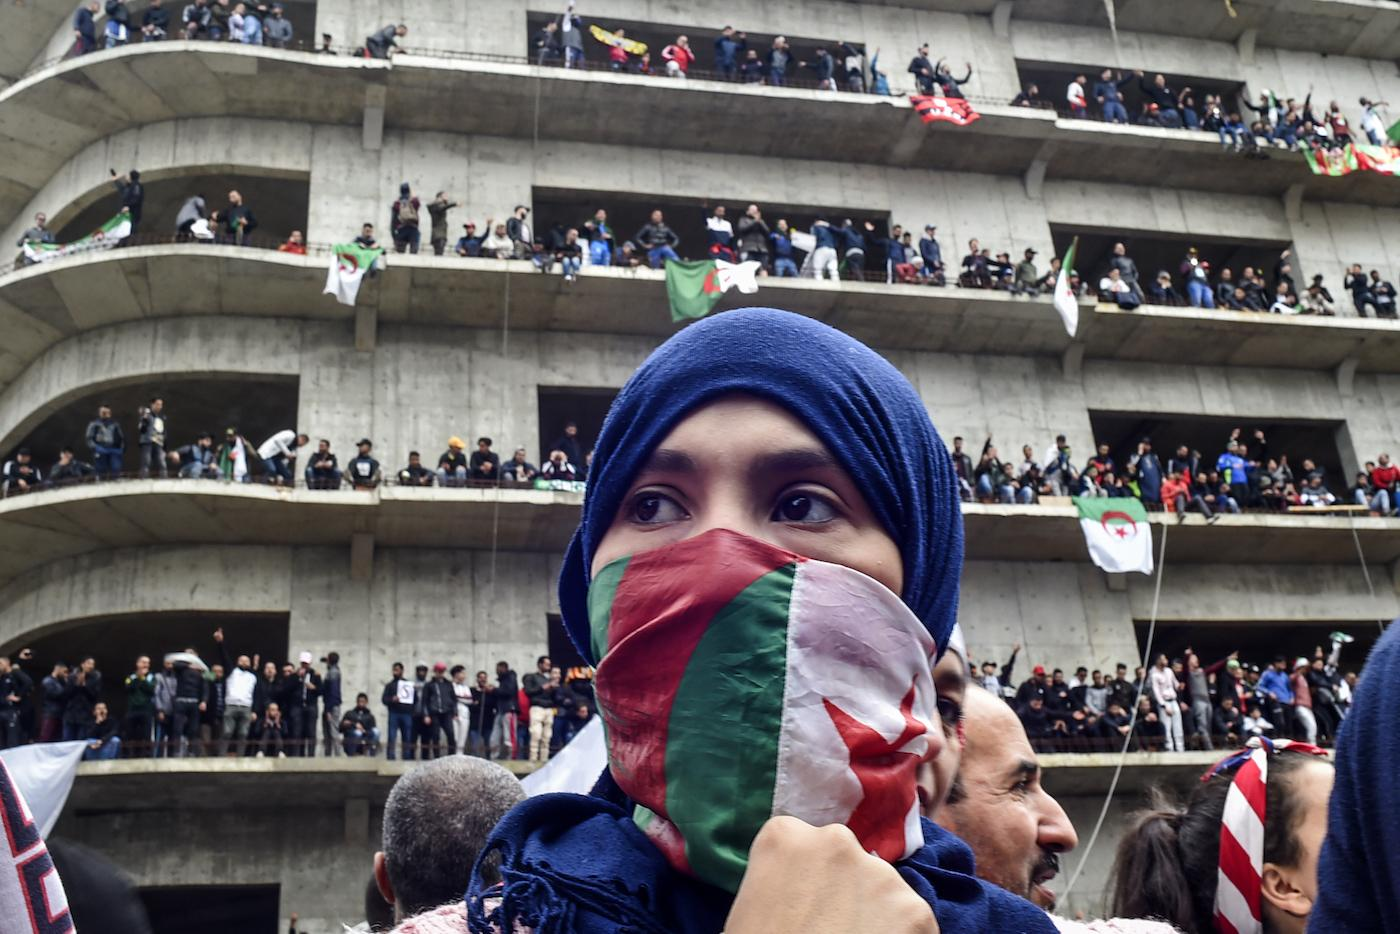 Algerian women have taken a center stage in the massive protests that are transforming the country. Photo credit: Associated Press